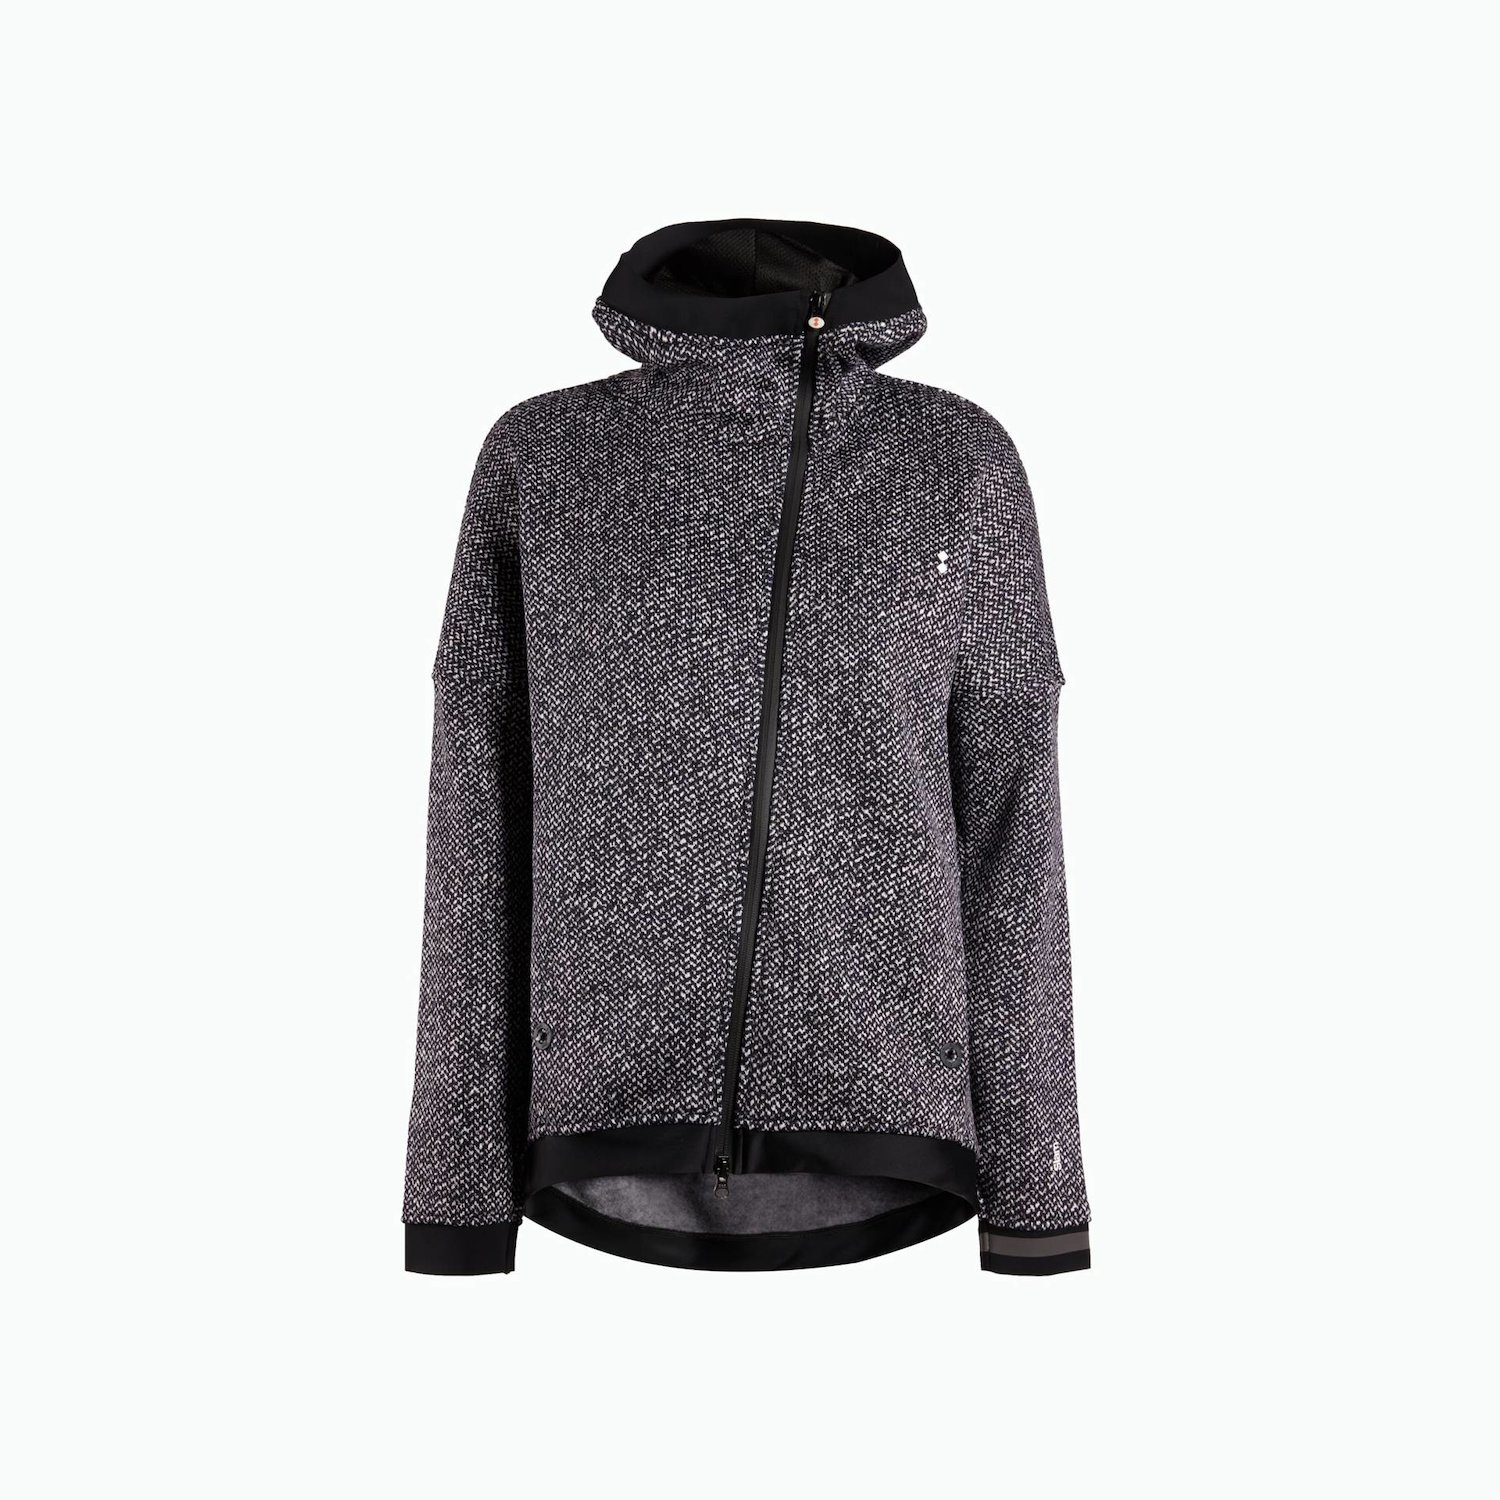 B128 Fleece - Navy / White